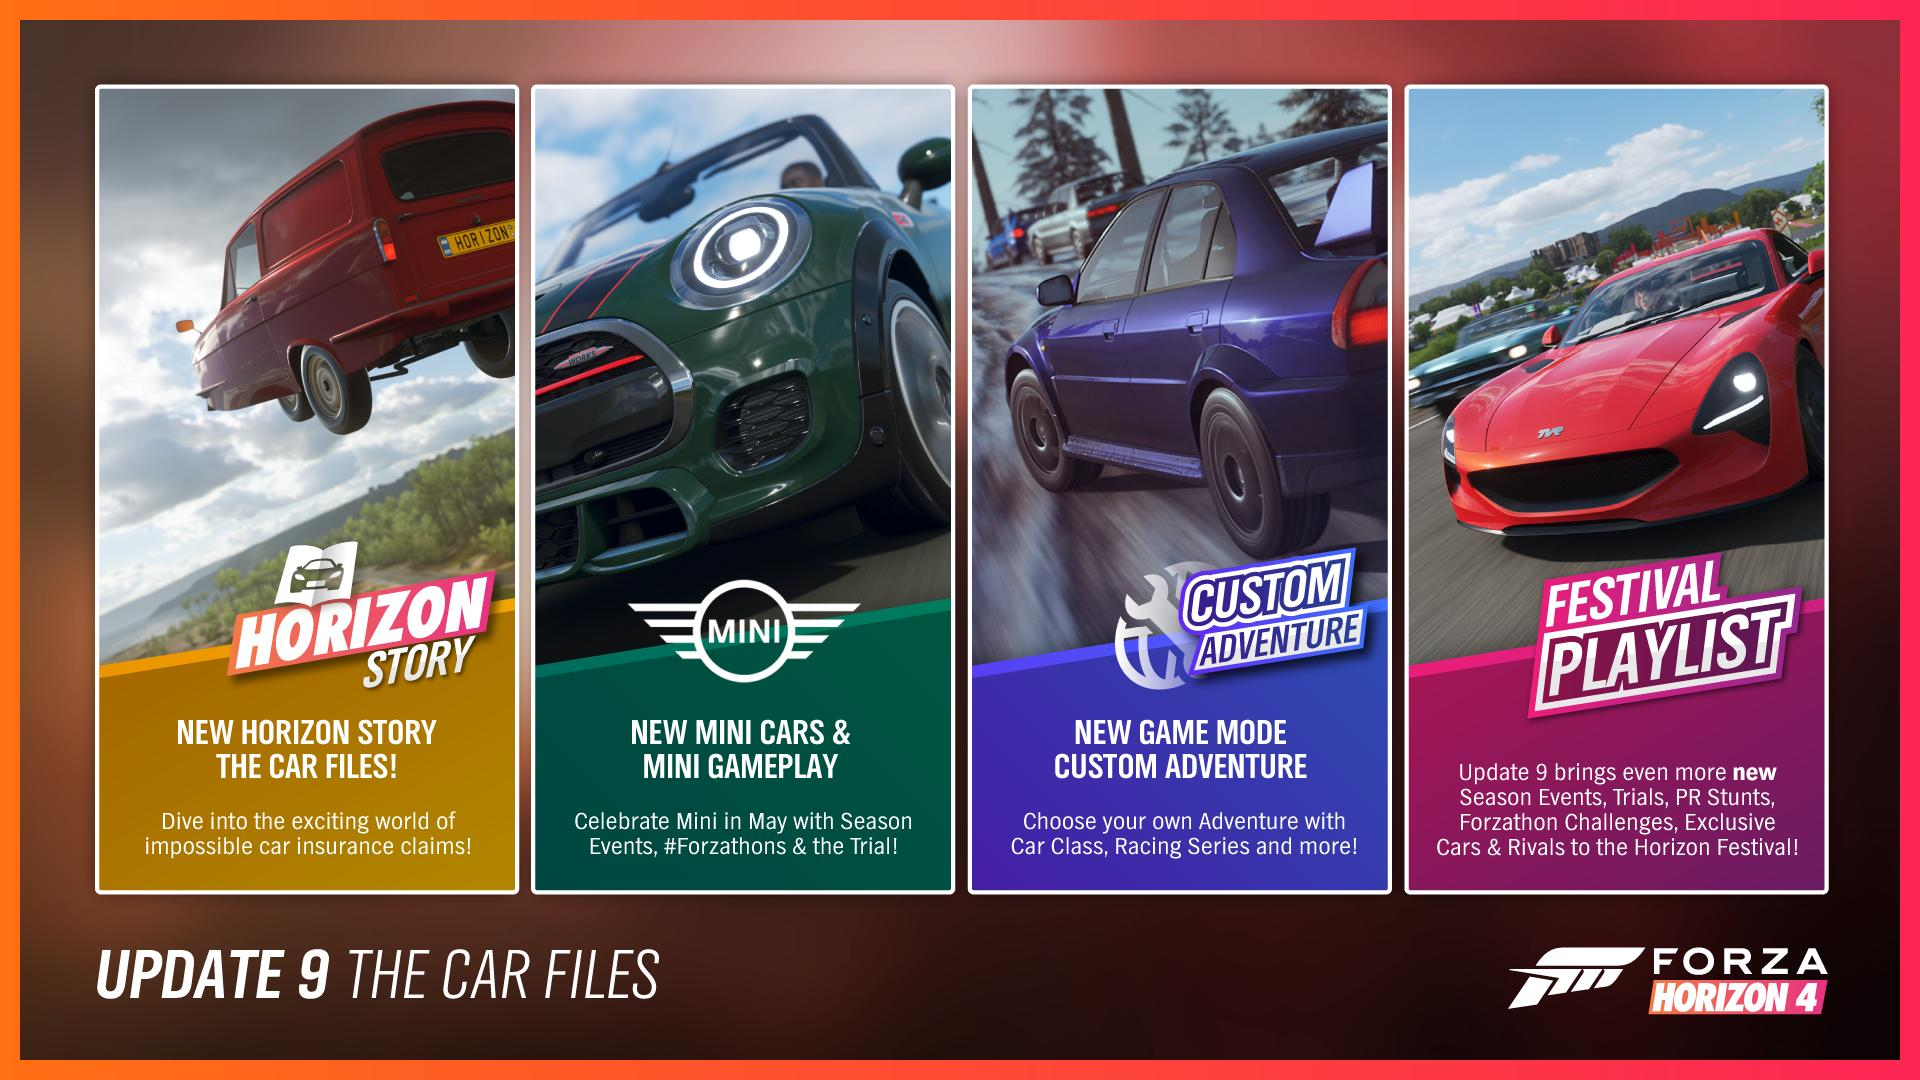 Forza Horizon 4/Update 9